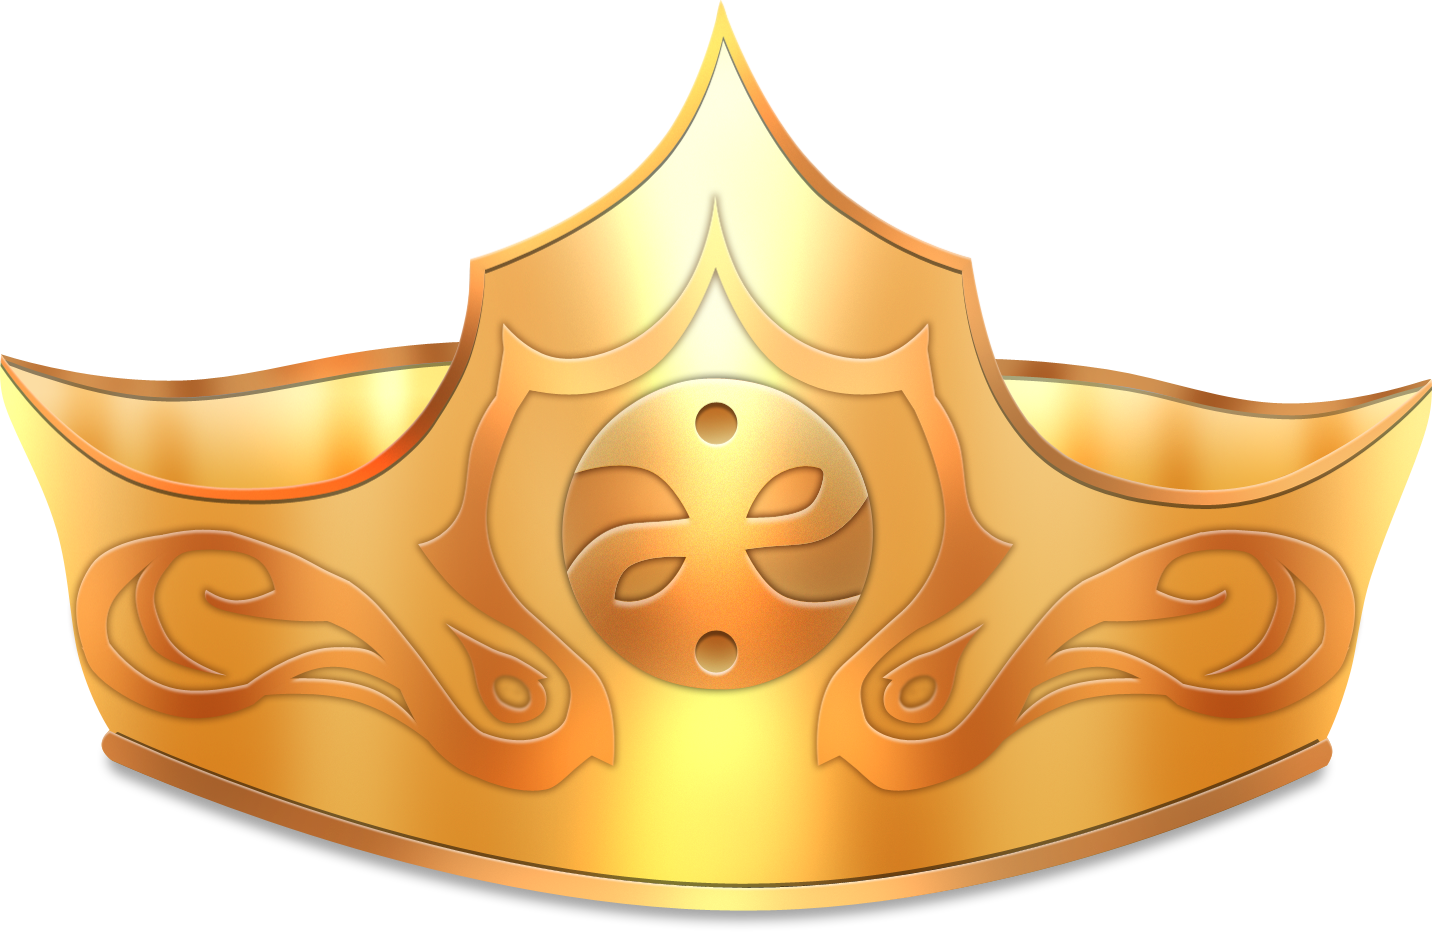 Gold Crown Png image #29929